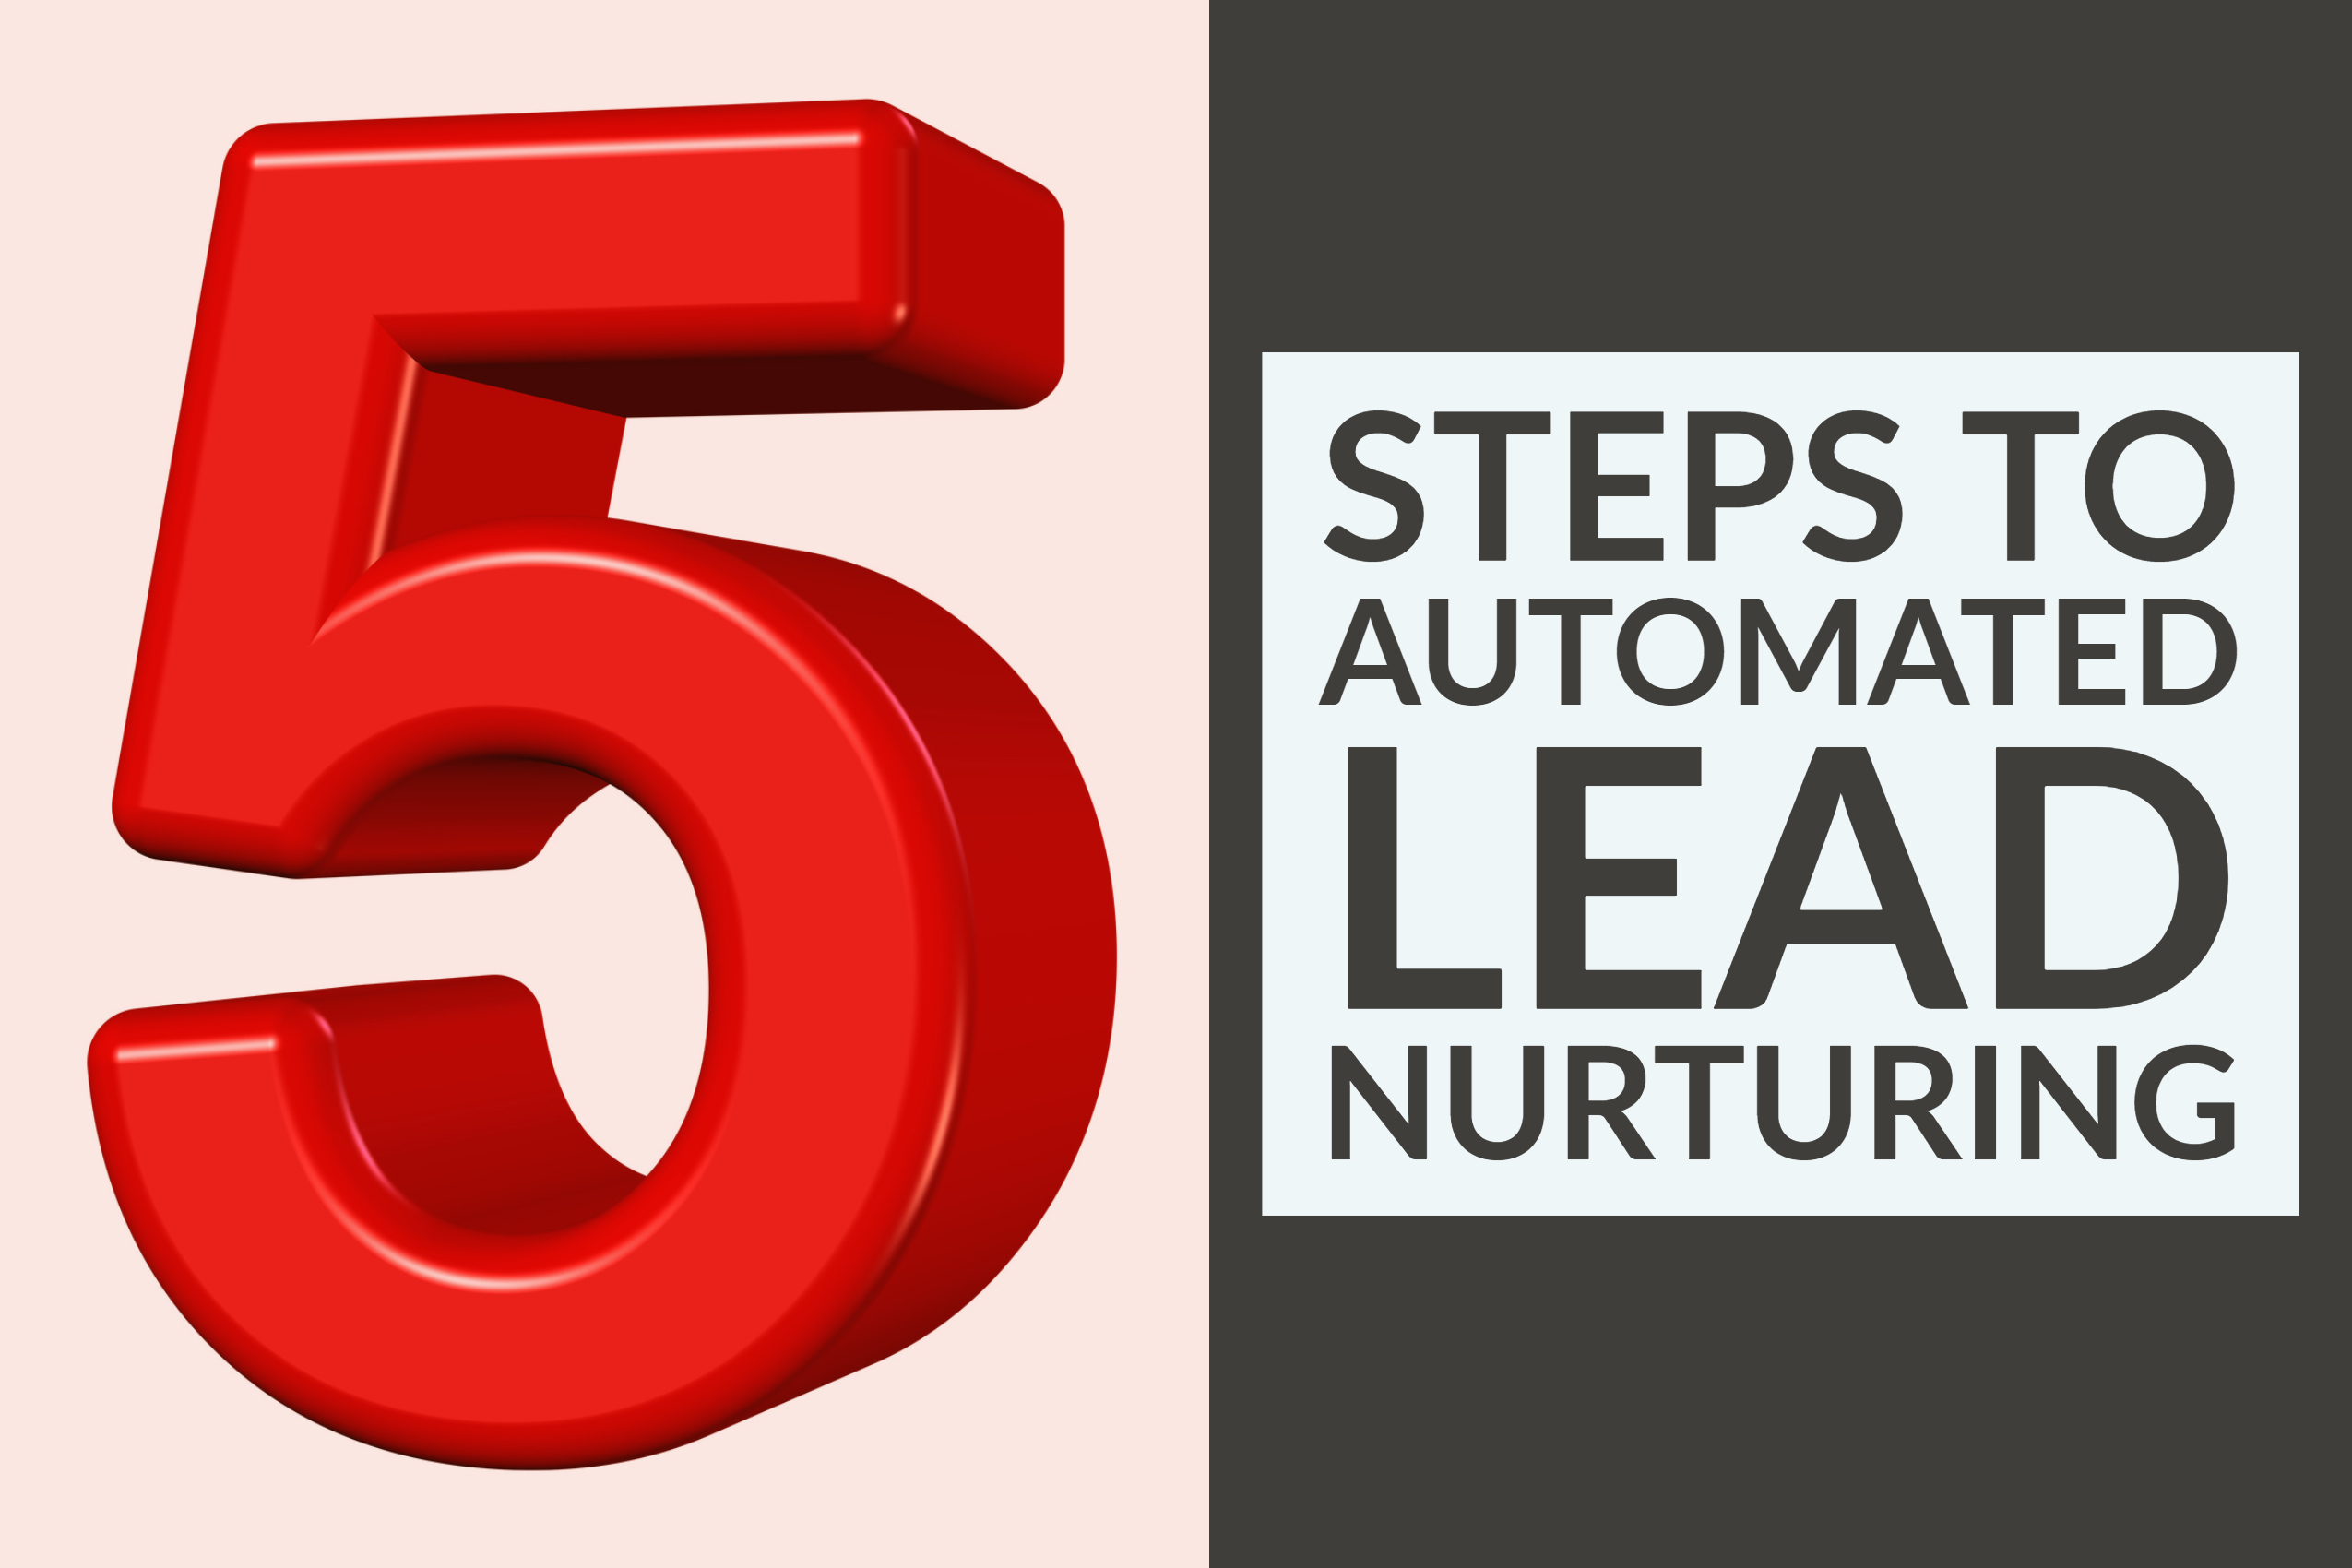 5 Steps To Automated Lead Nurturing